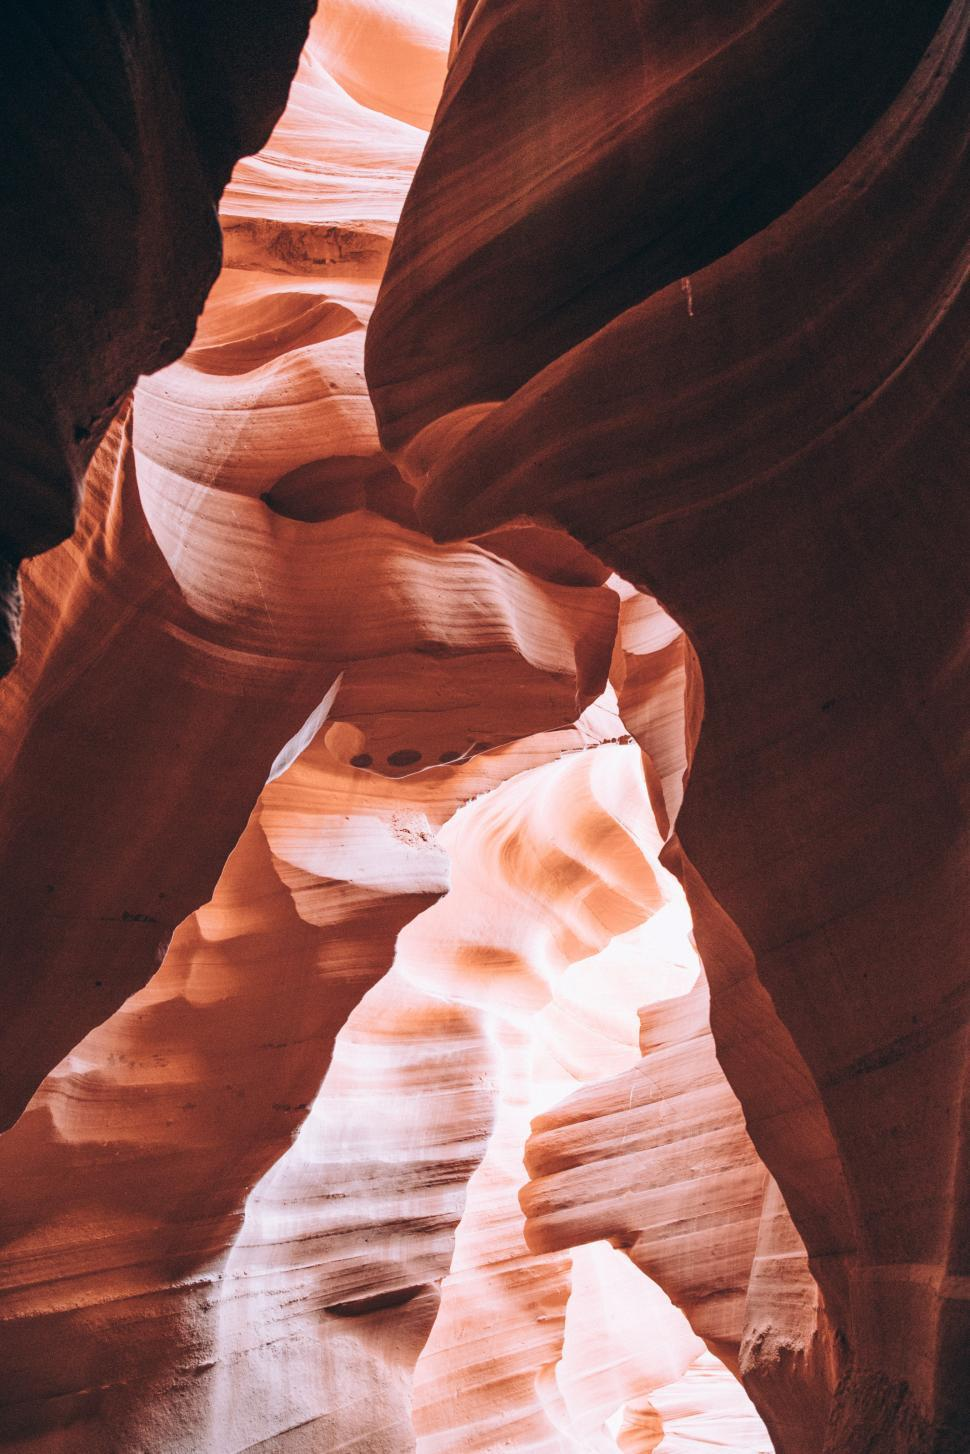 Download Free Stock HD Photo of Inside Antelope slot canyons Online